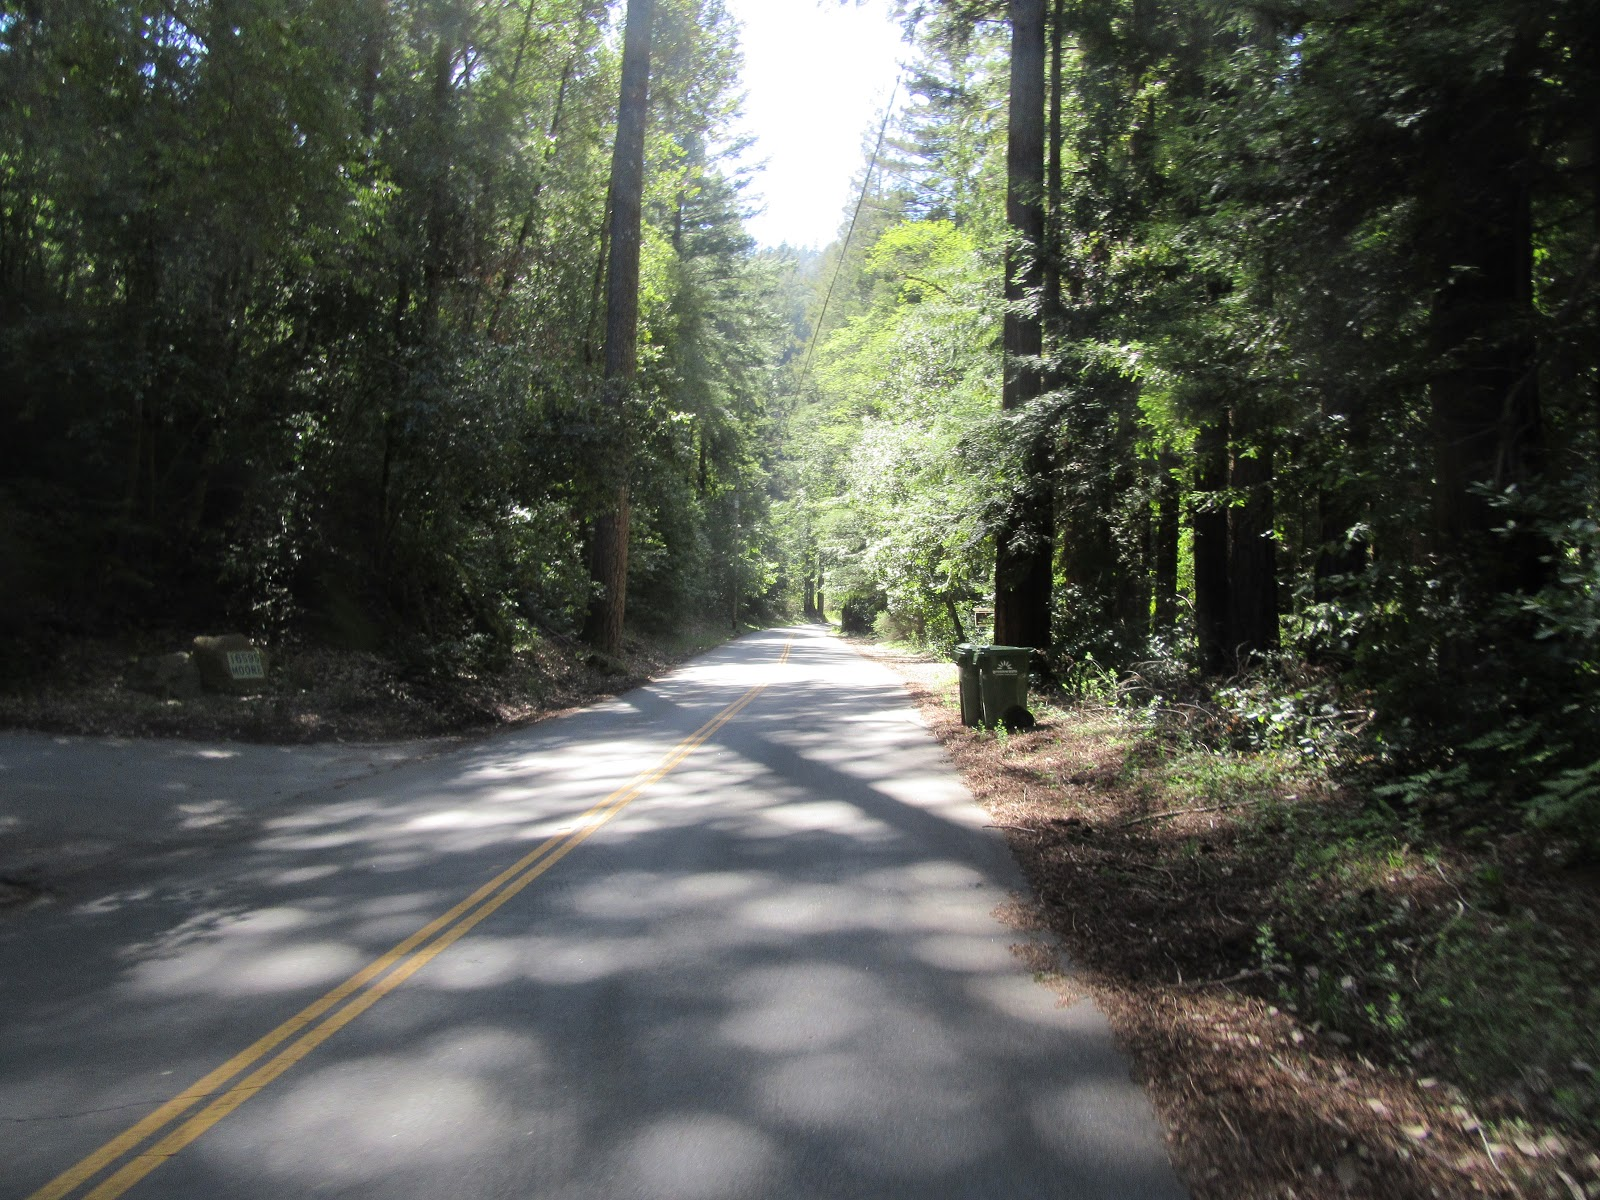 Bicycle climb Jamison Road  - roadway surrounded by forest